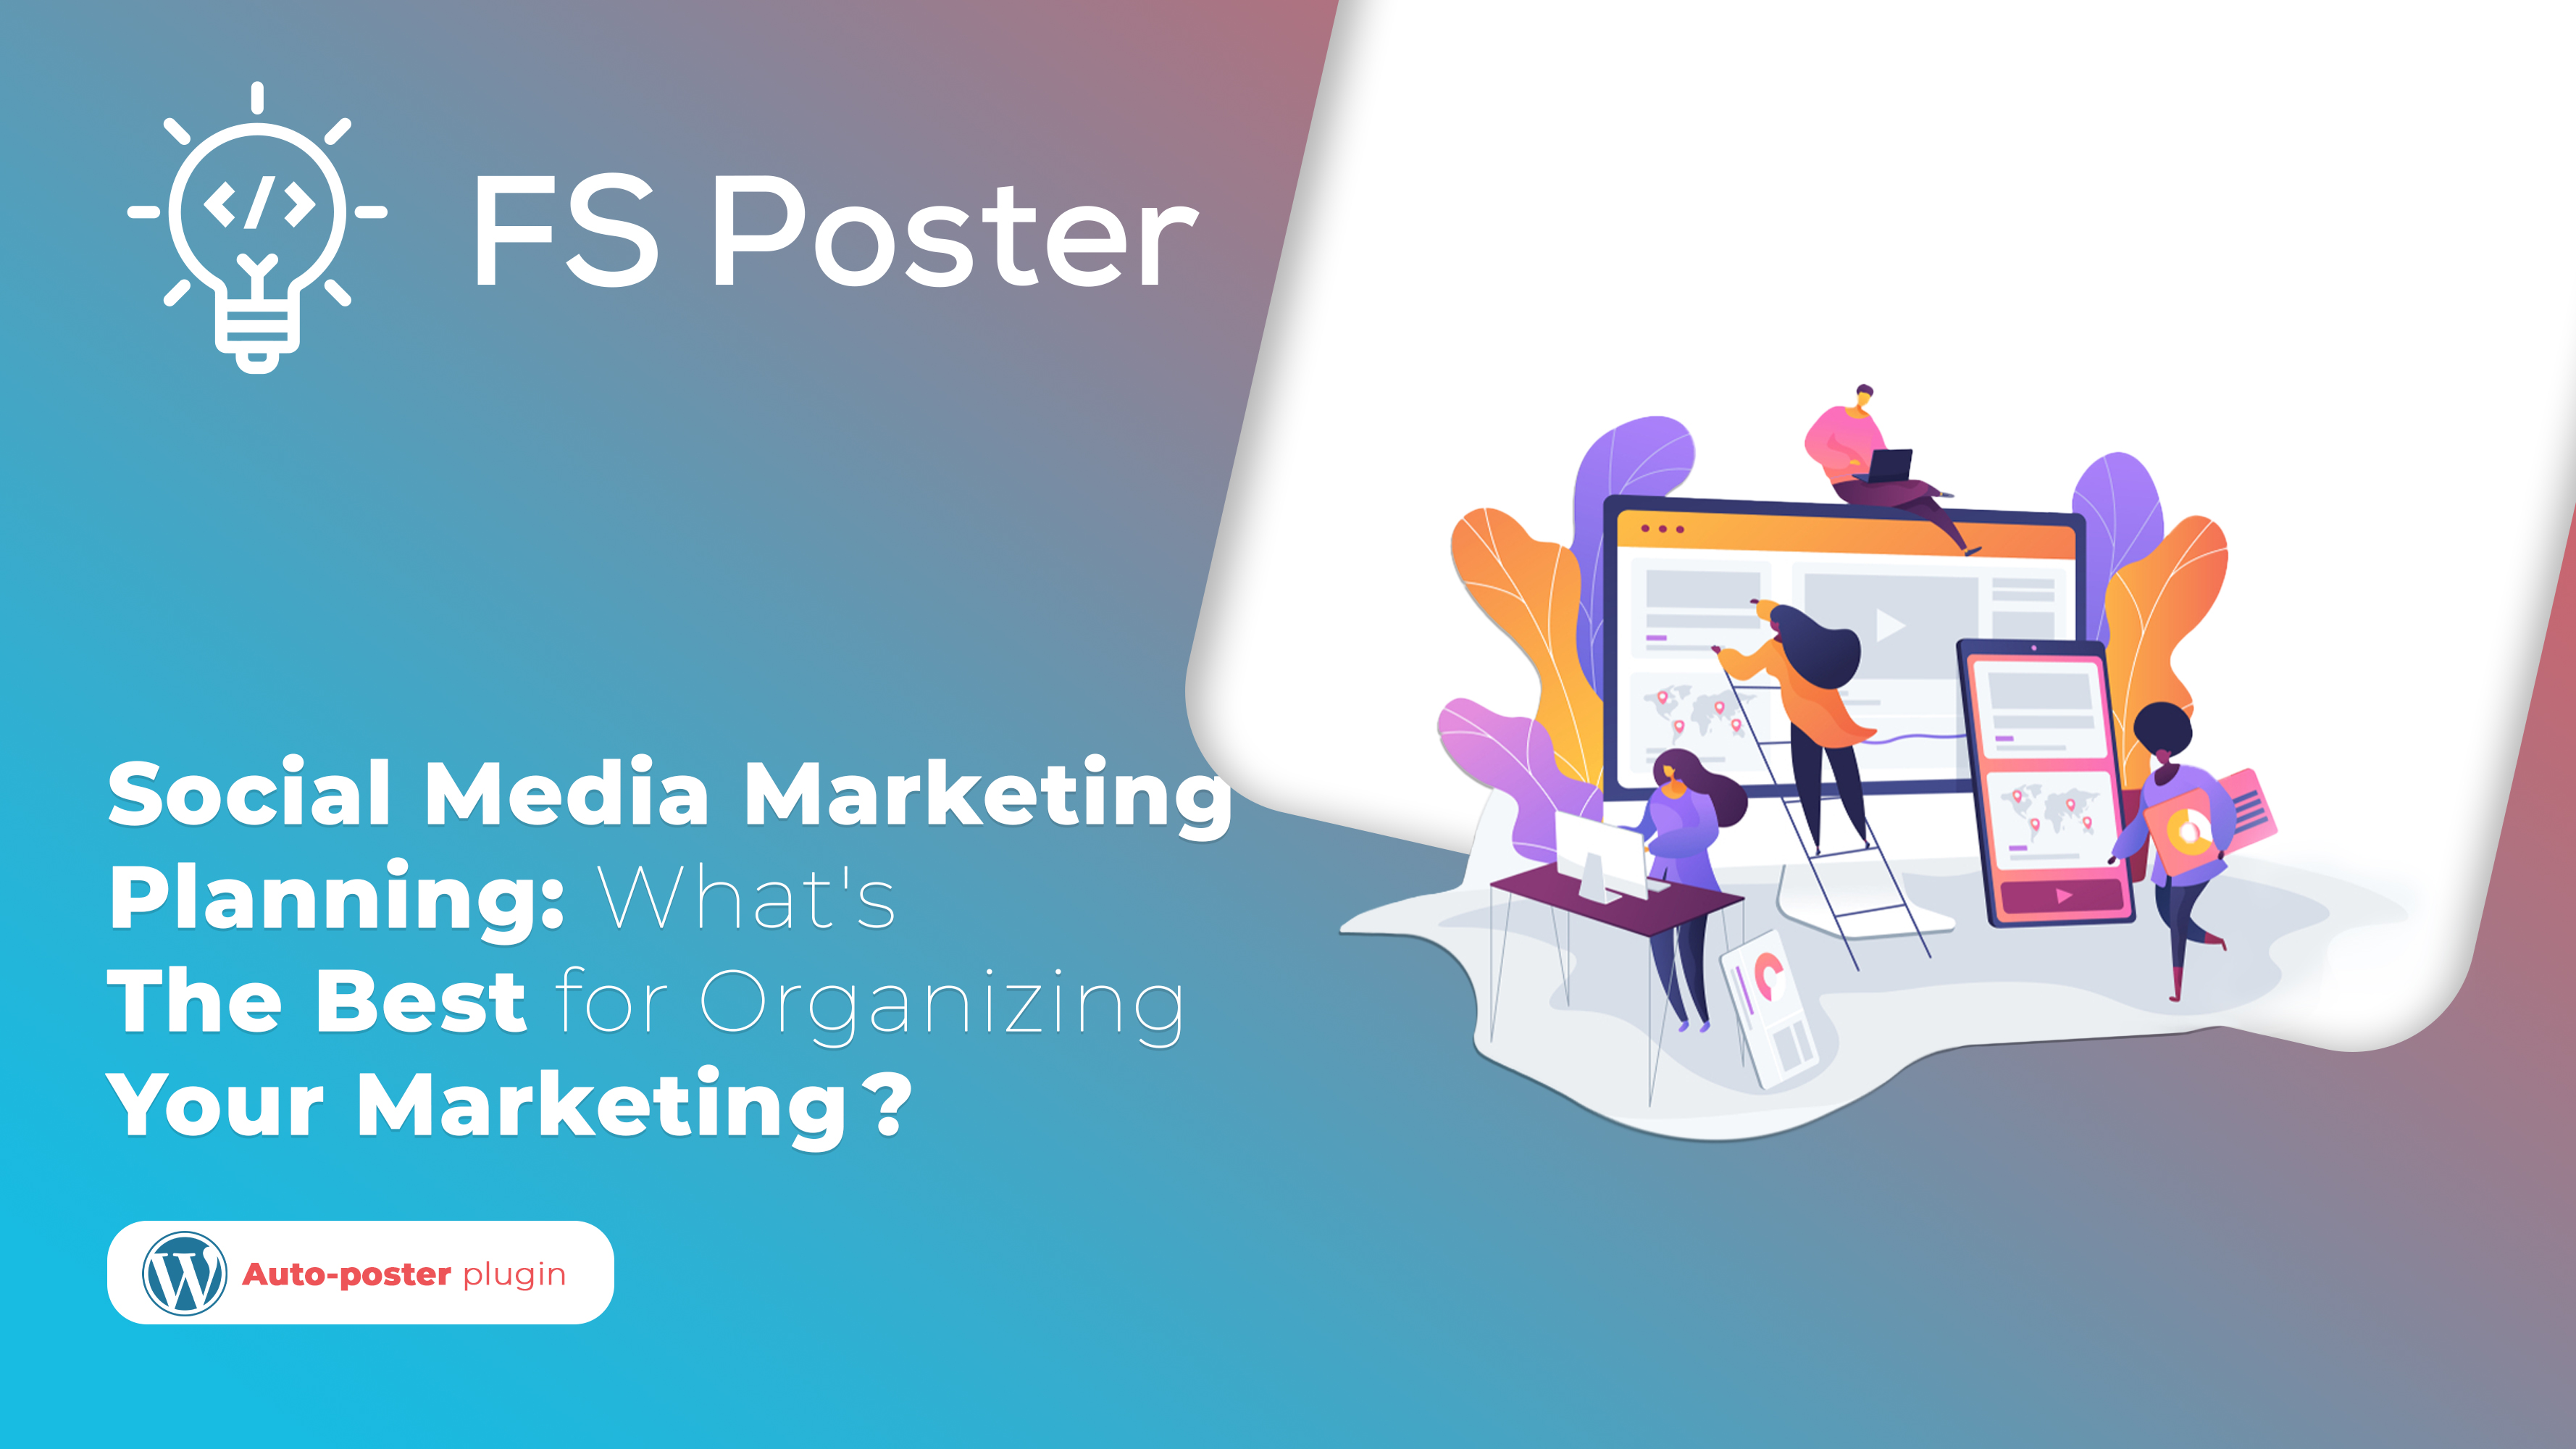 Social Media Marketing Planning: What's The Best for Organizing Your Marketing